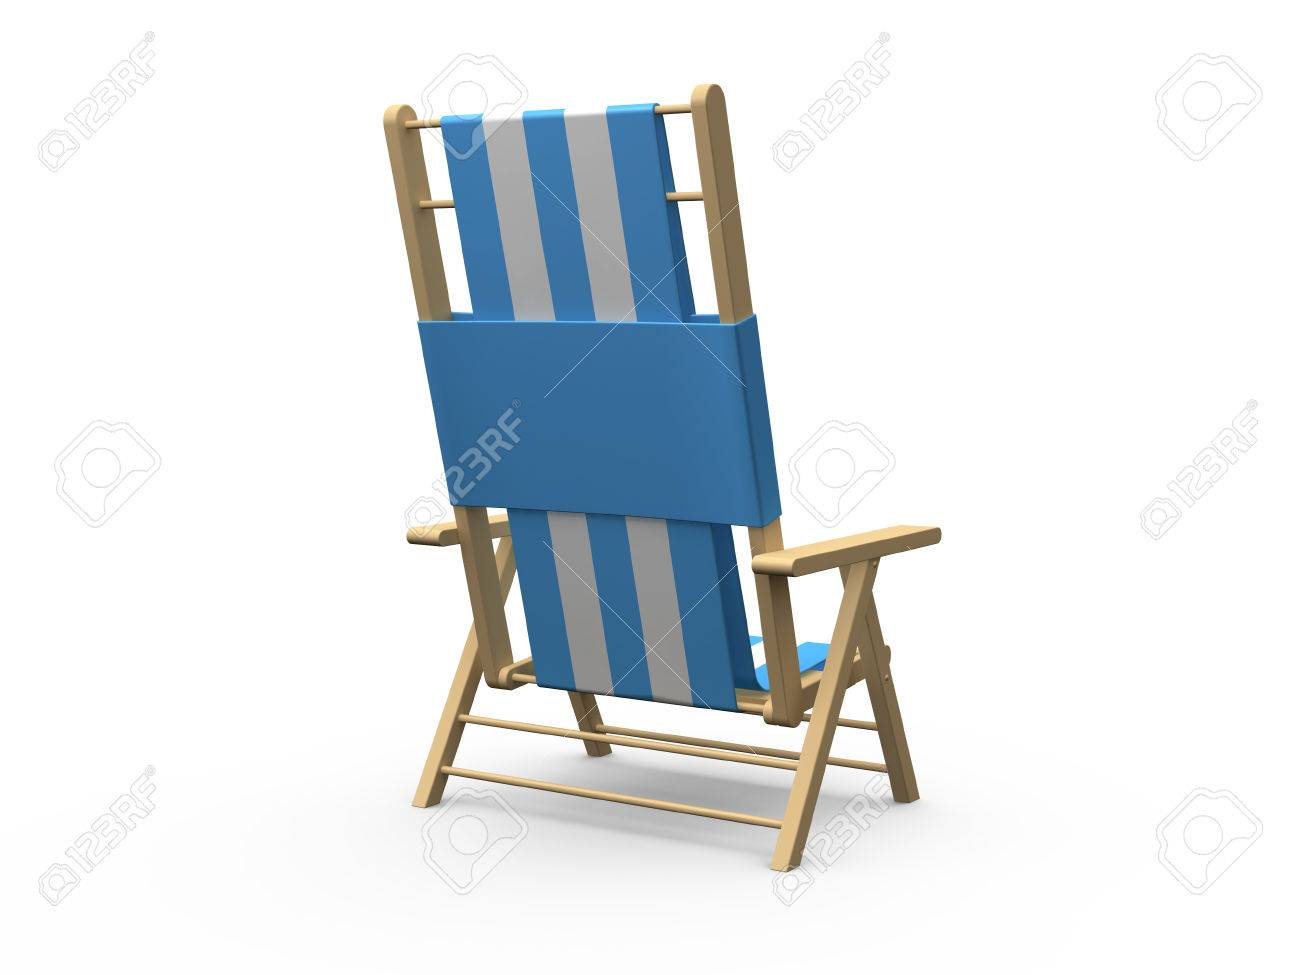 wood beach chairs ergonomic mesh office chair uk blue and white wooden back view isolated on background stock